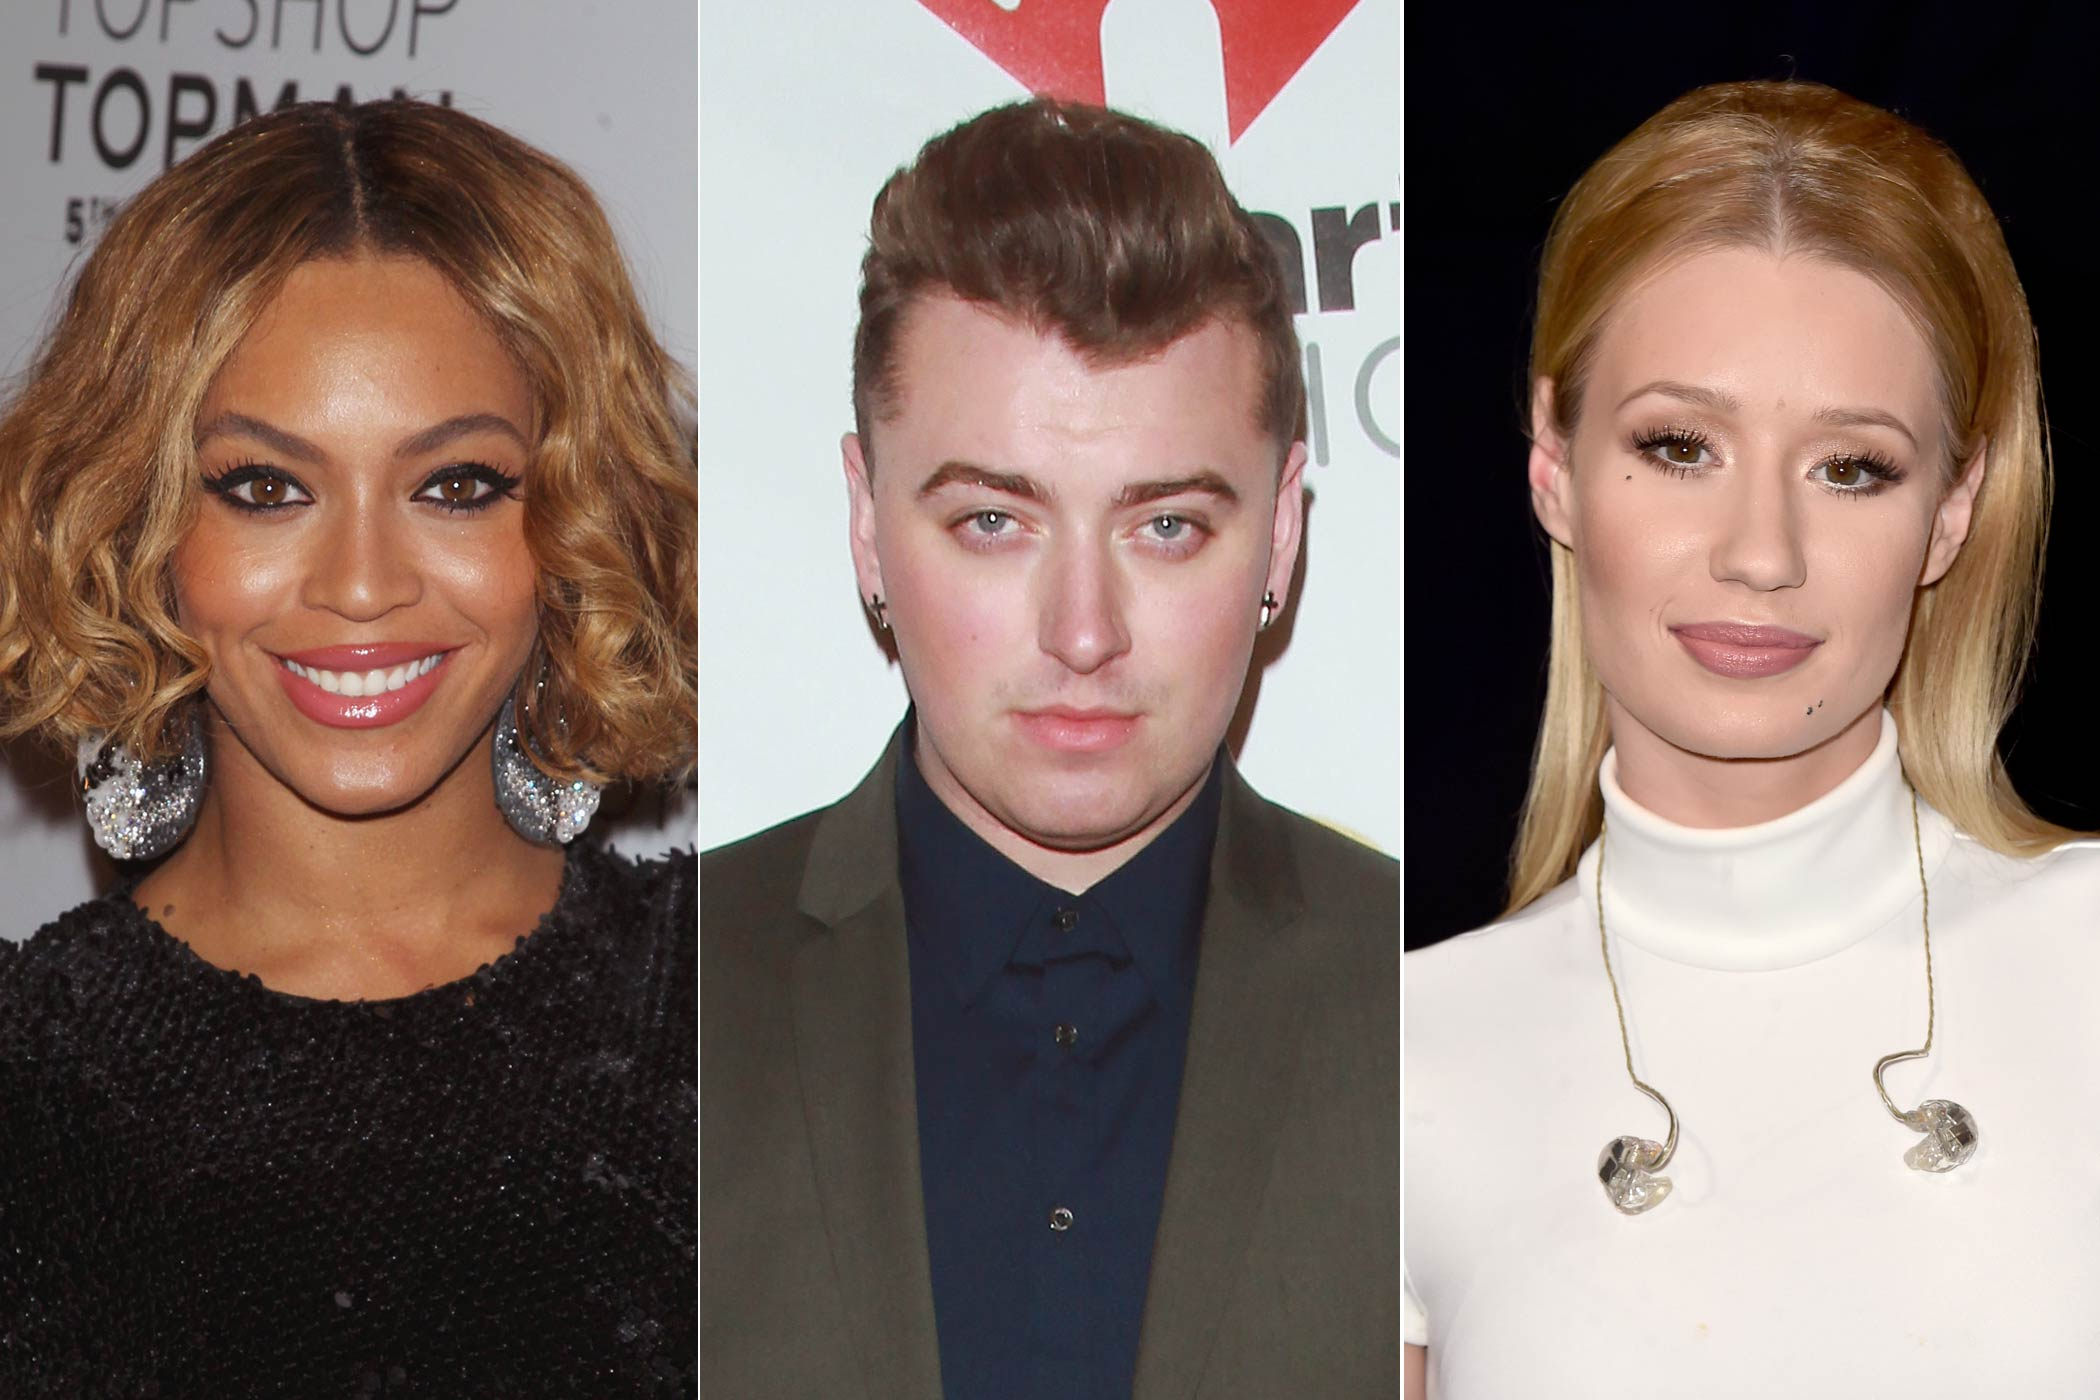 From left: Beyoncé, Sam Smith, Iggy Azalea